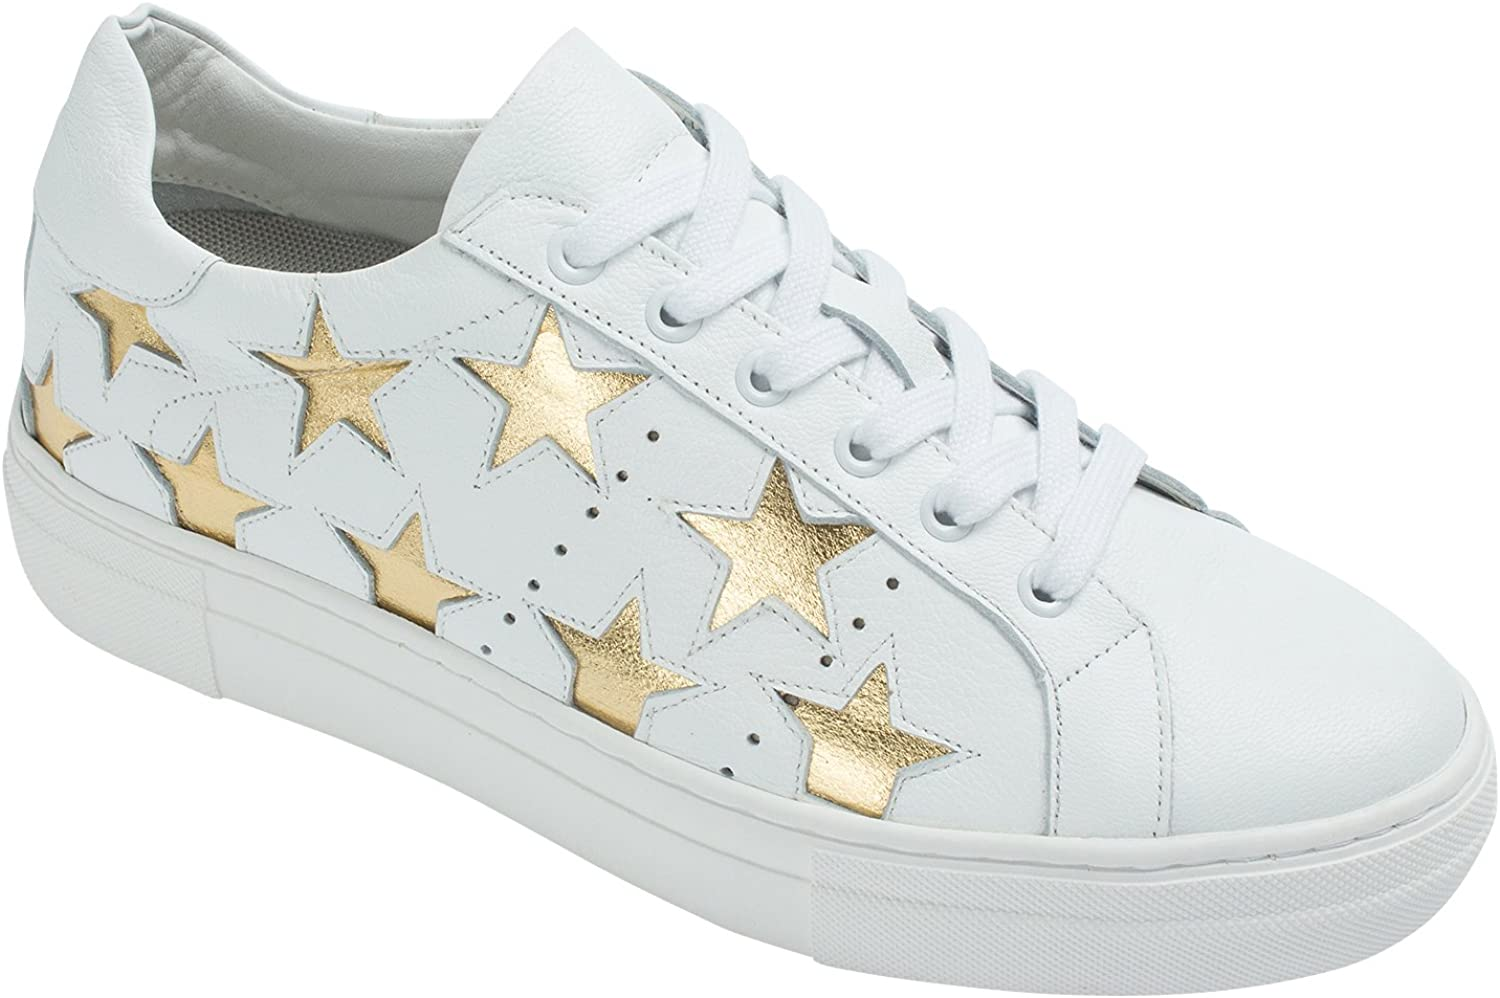 AnnaKastle Womens Genuine Leather Star Fashion Lace Up Platform Sneakers